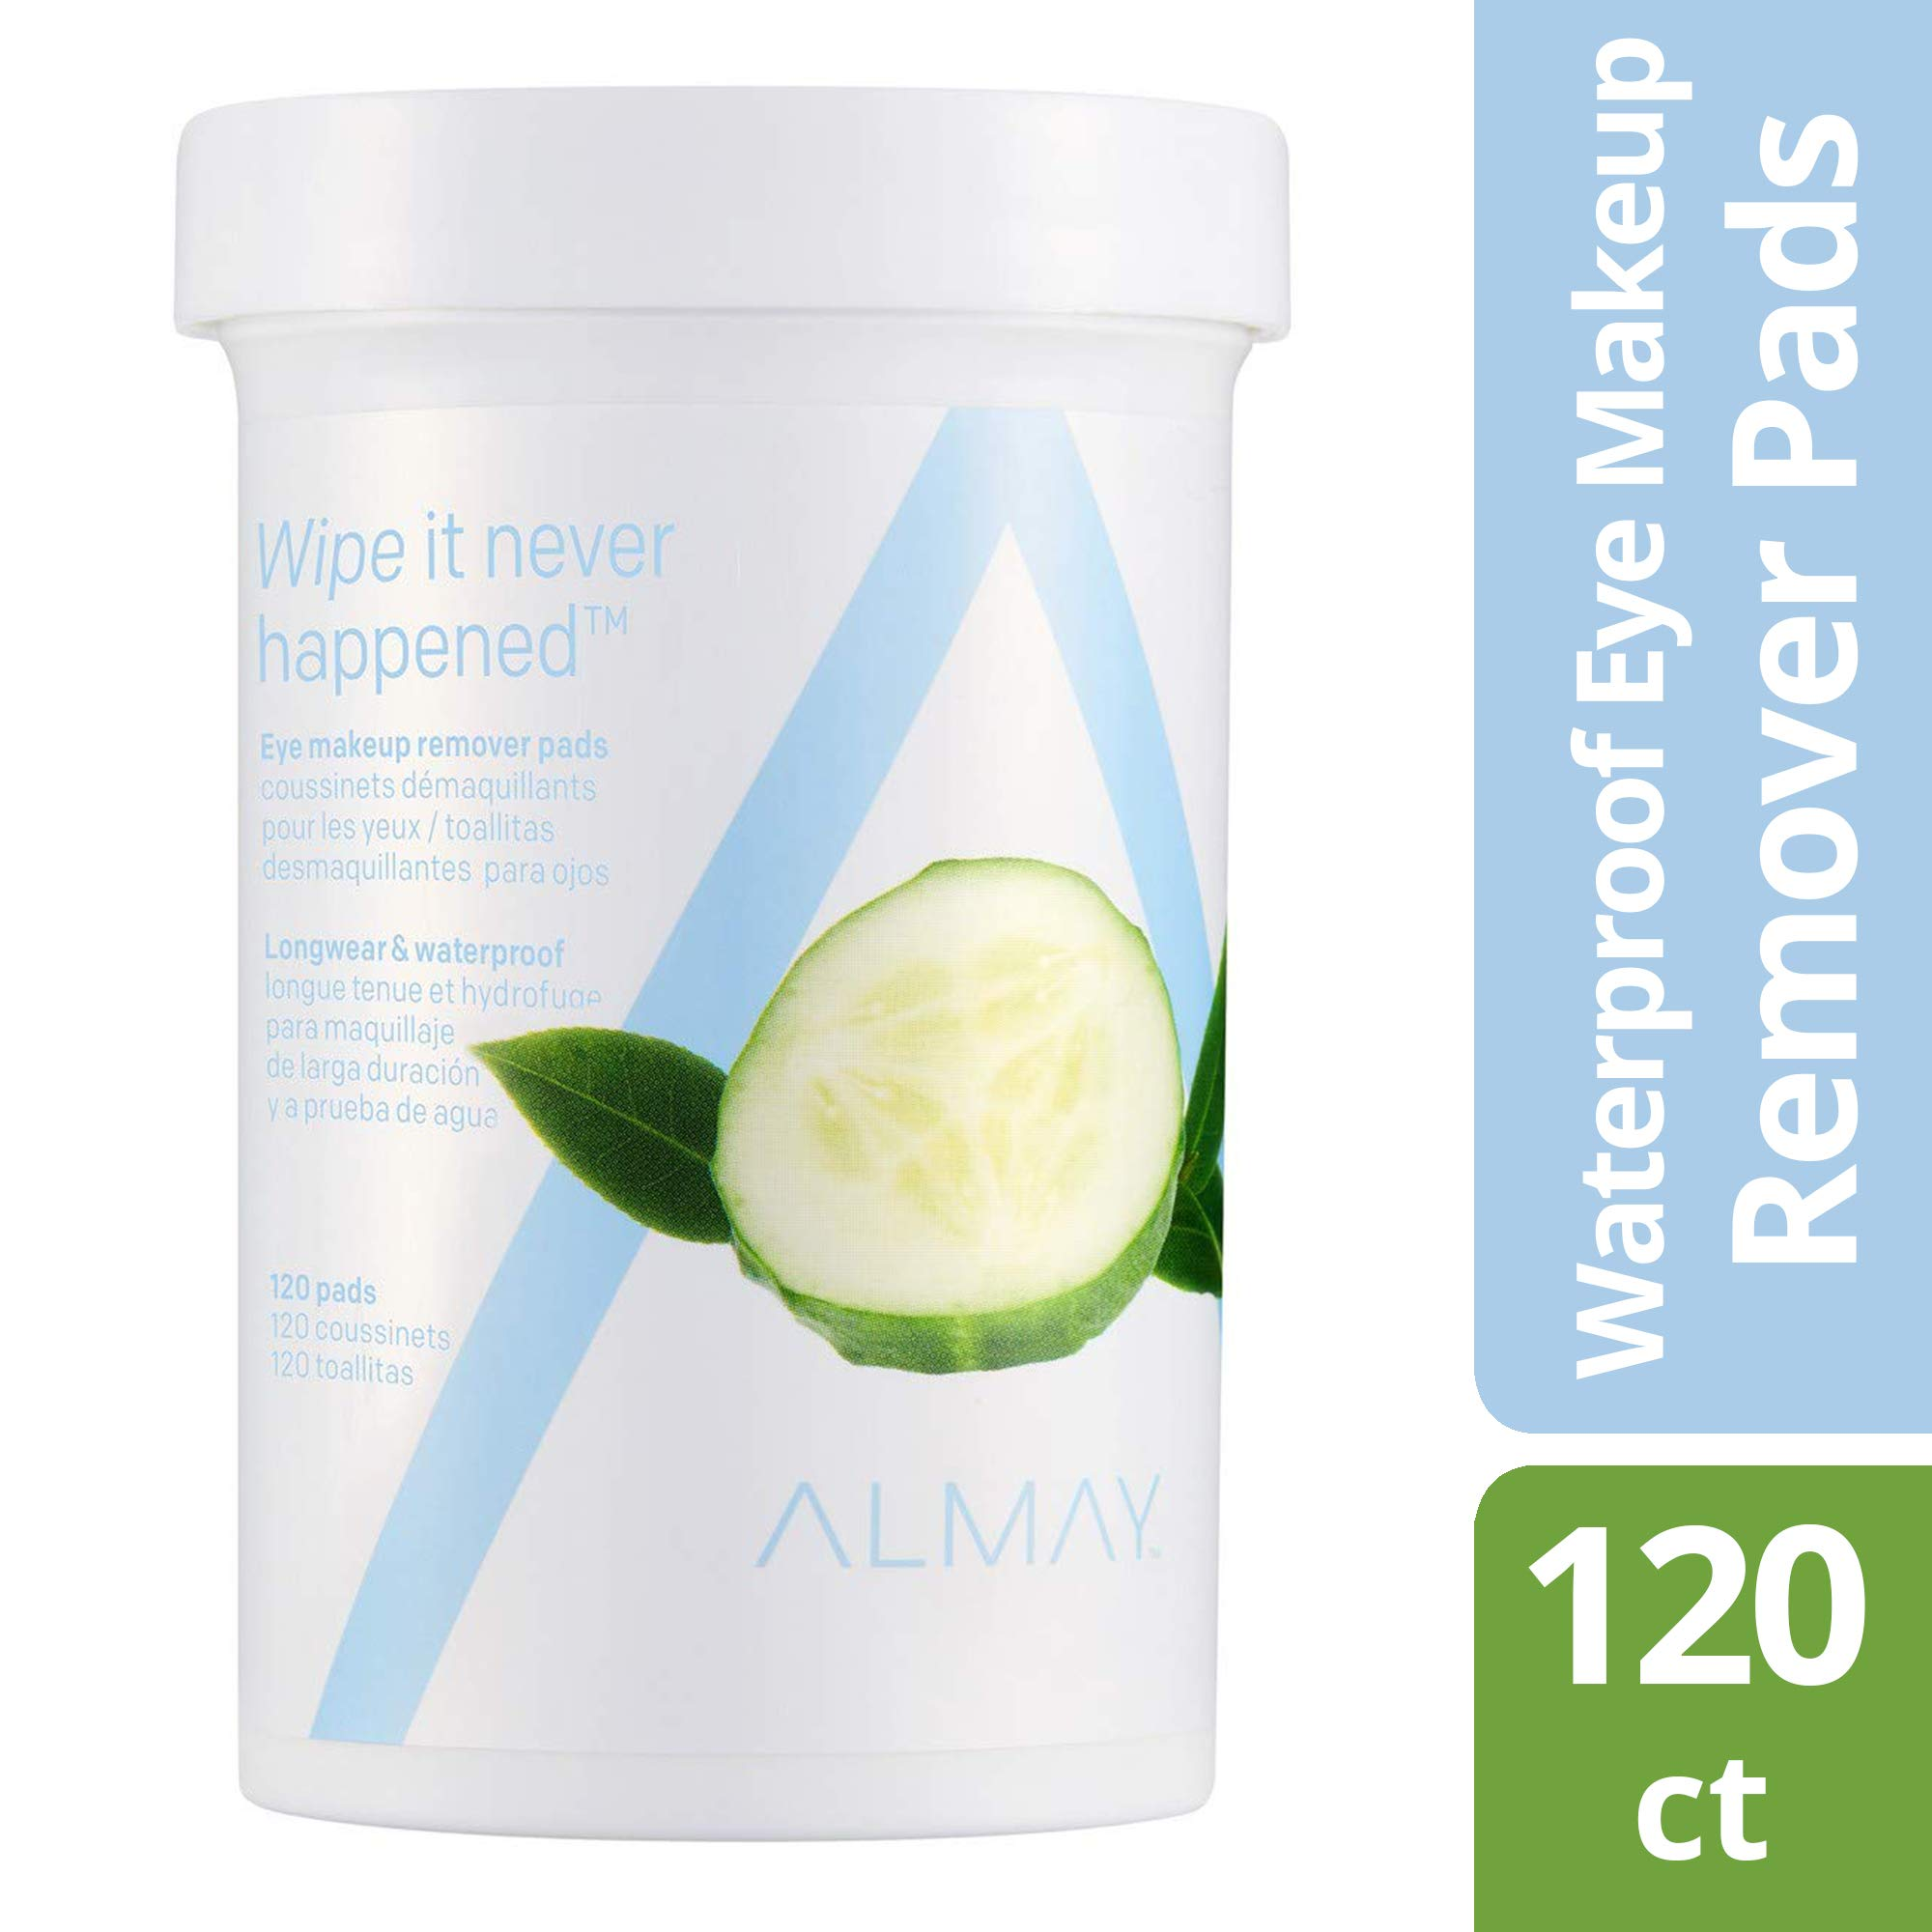 Almay Longwear Eye Makeup Remover Pads , 120 count, waterproof make up remover wipes